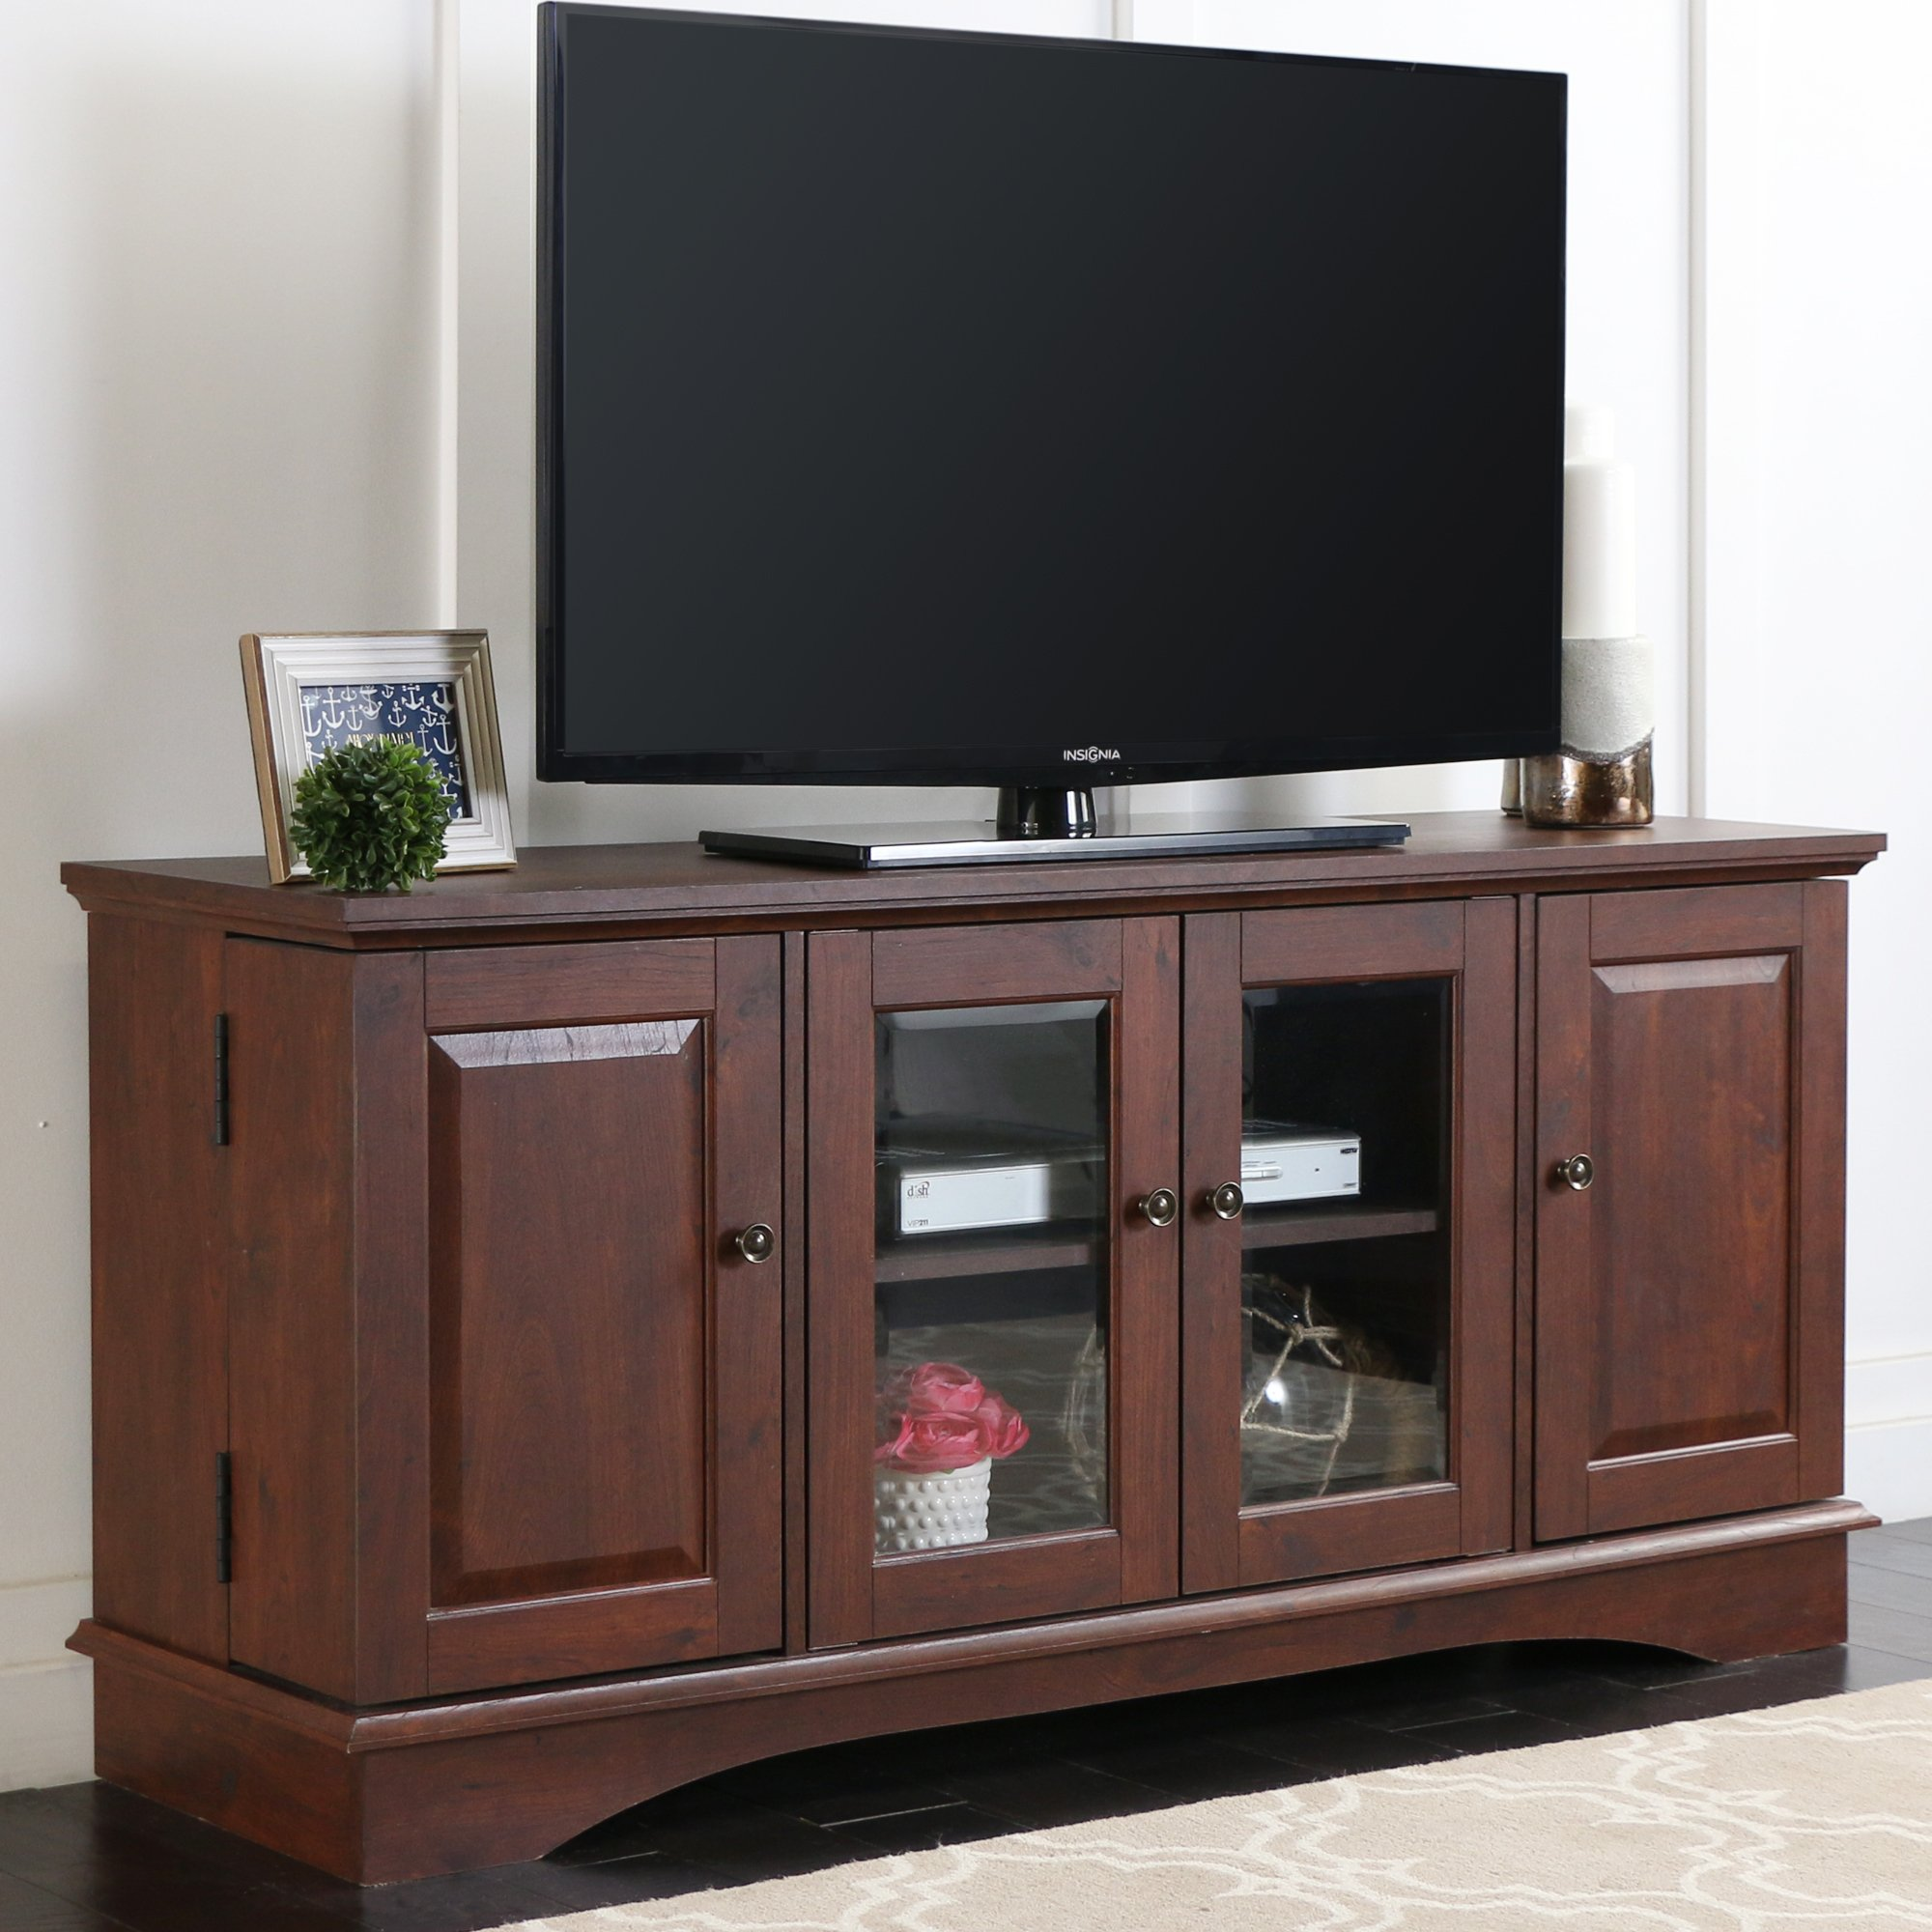 52'' Media Storage Wood TV Stand/Console in Medium Traditional Brown Finish